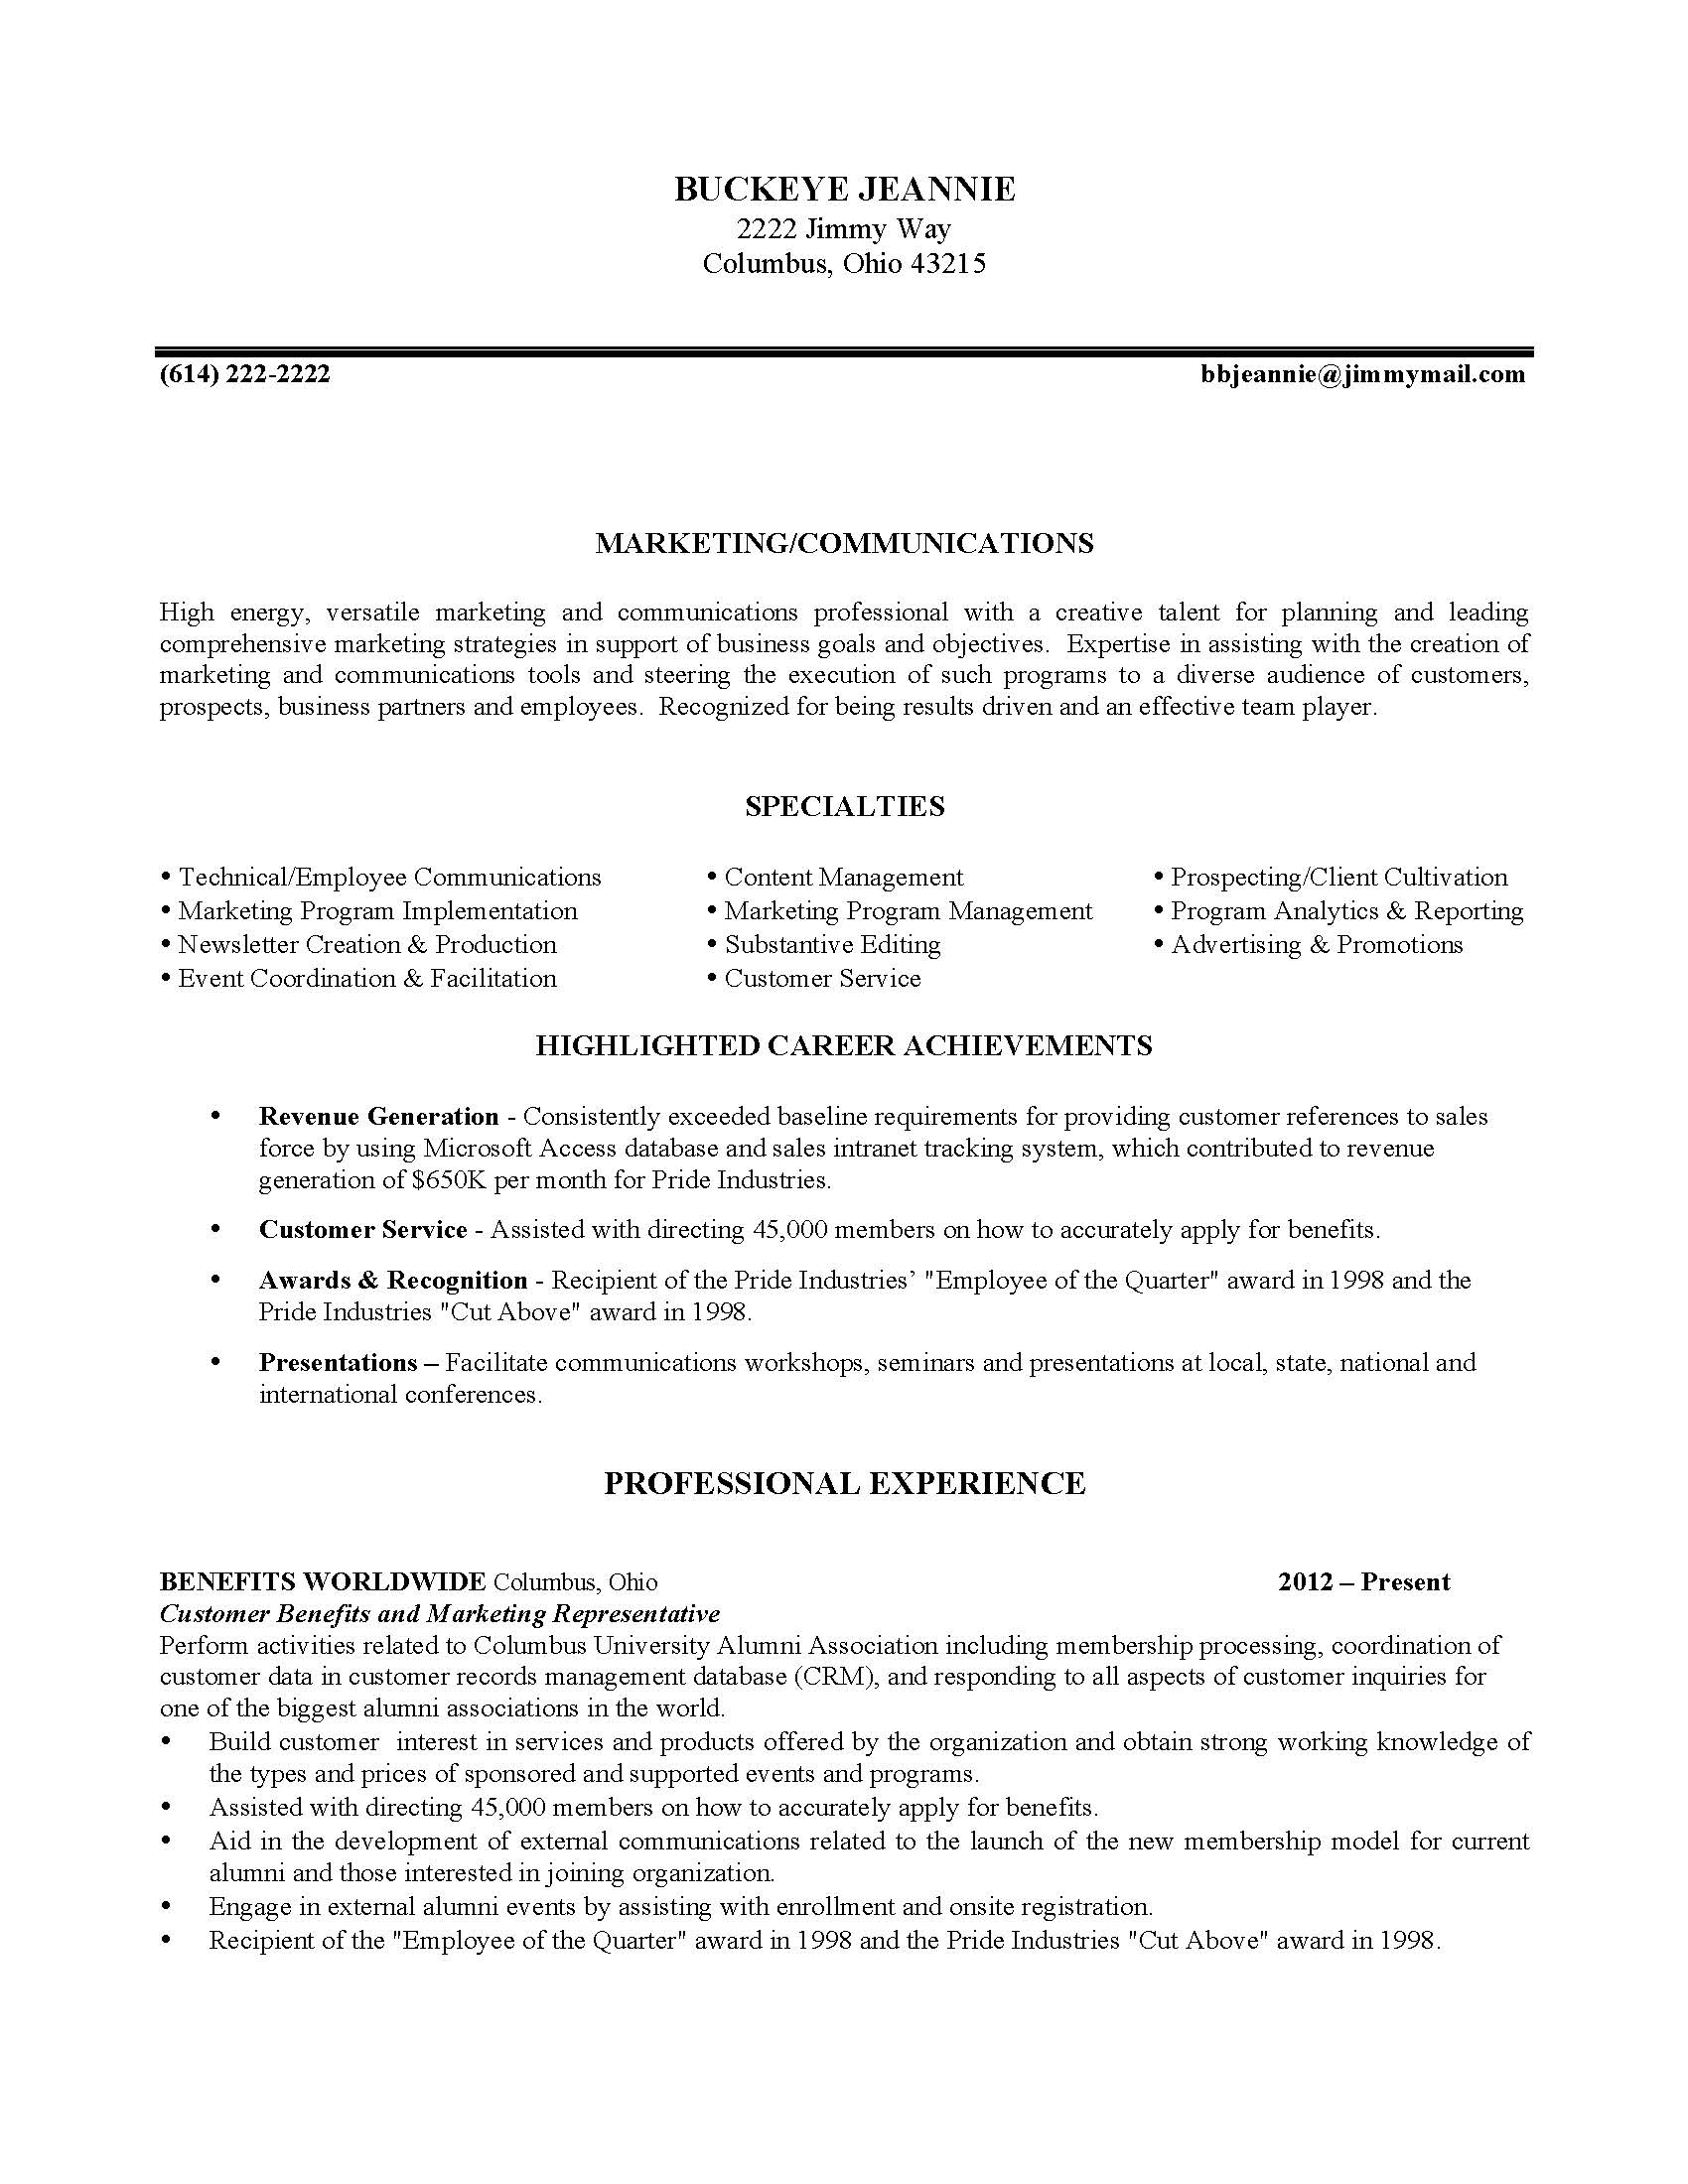 download - Email Marketing Cover Letter